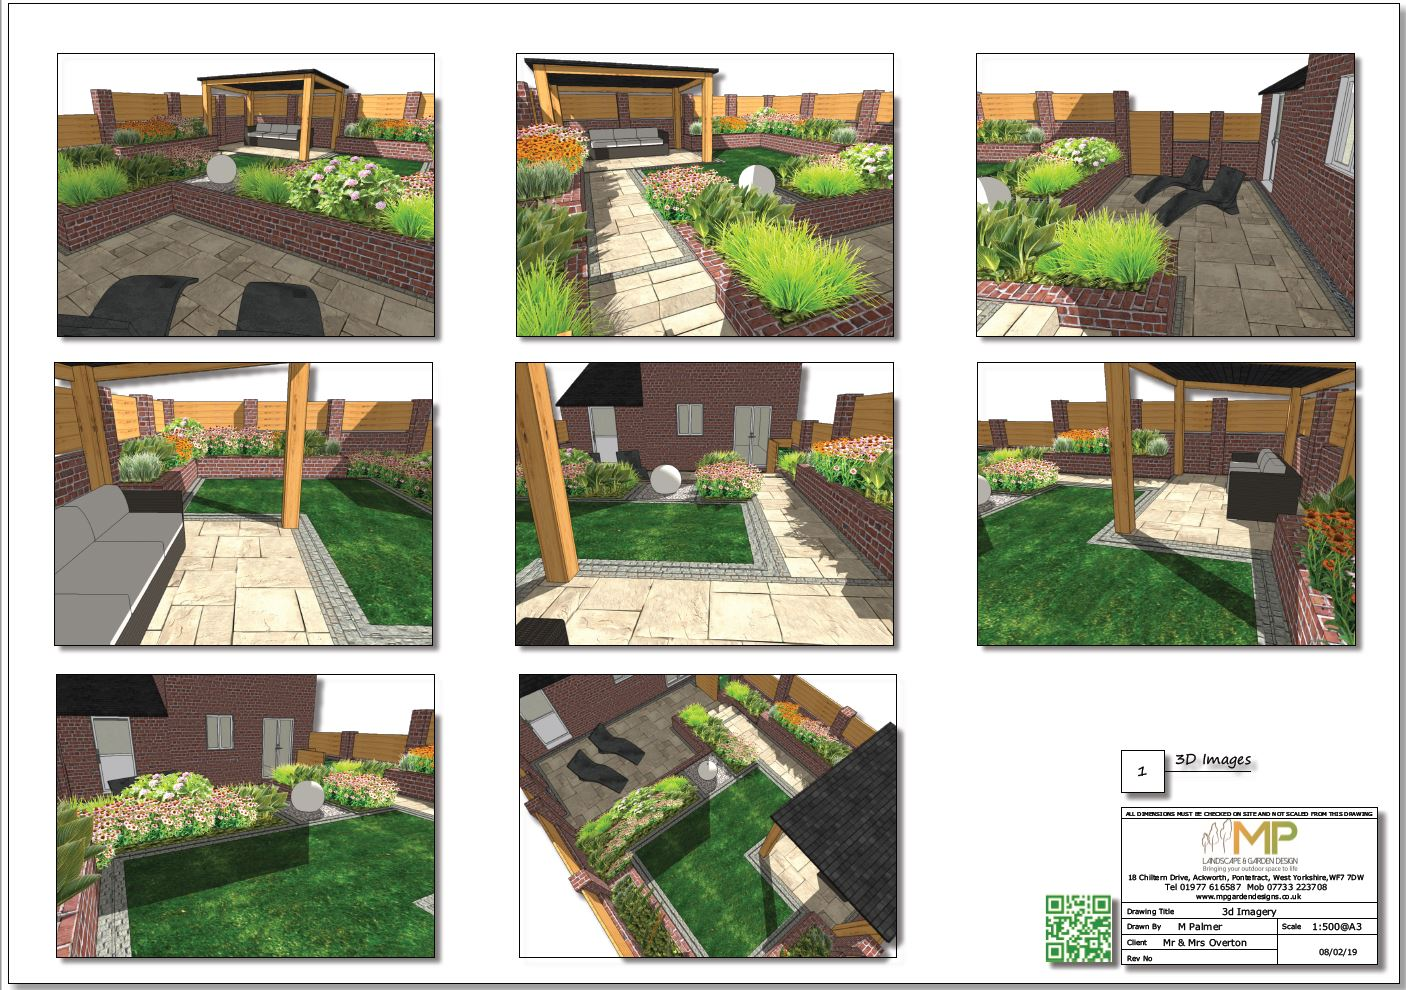 Colour garden layout plan 3D images for a property in Pontefract.